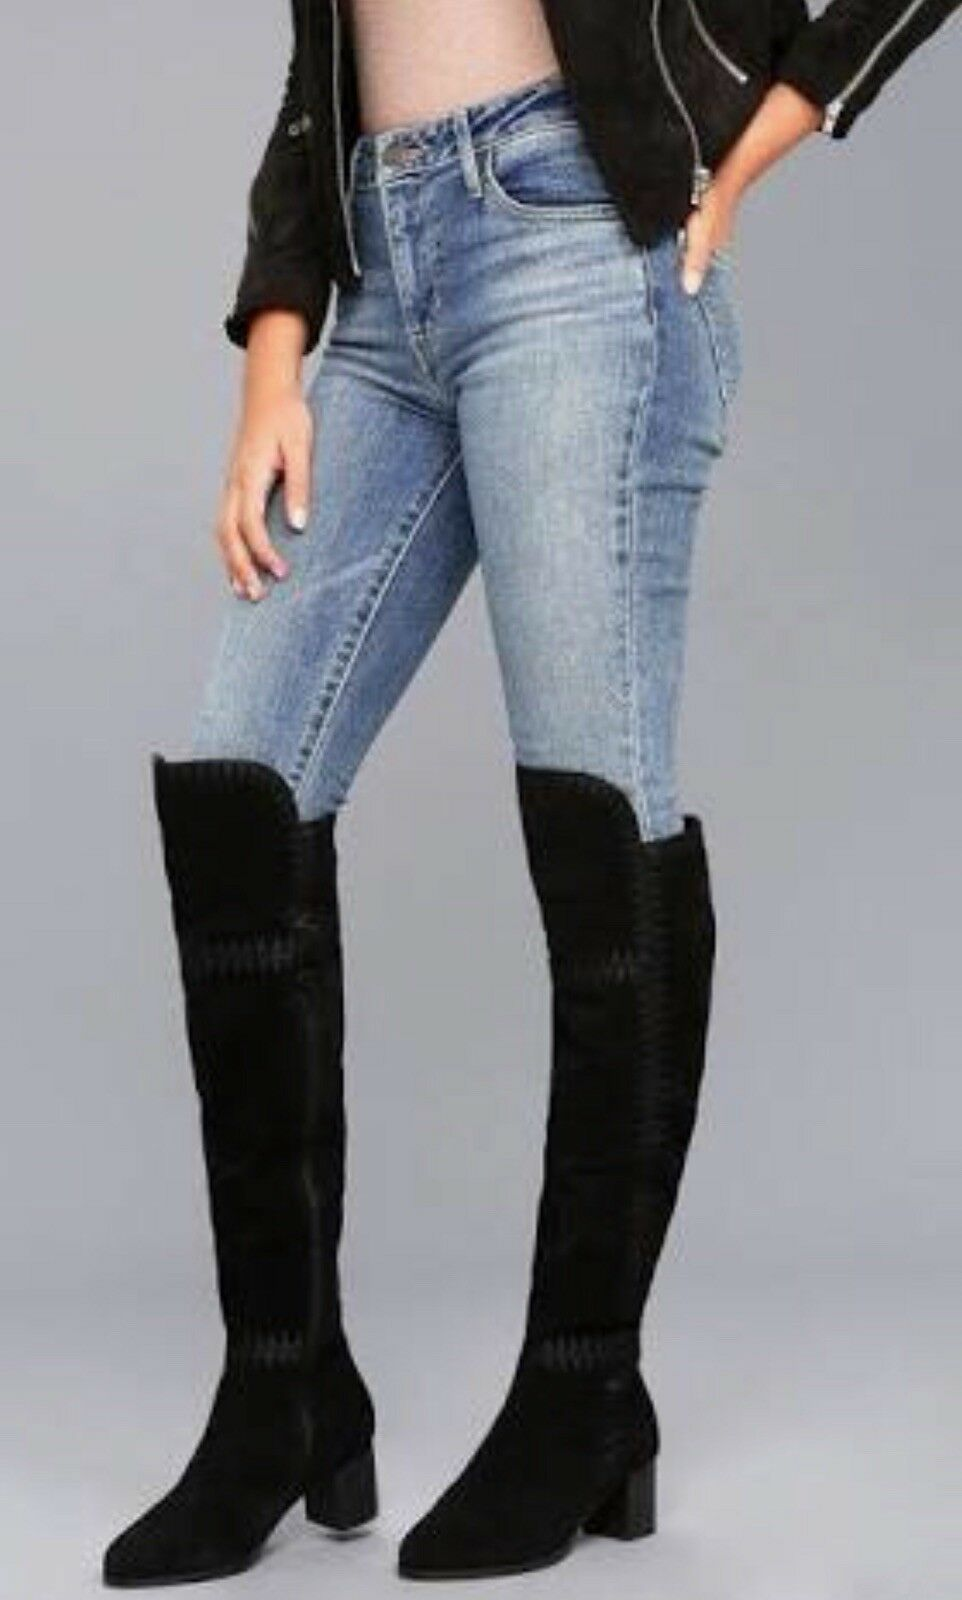 New In Box Matisse Moon Boots - Black - Over The Knee - Size 8.5